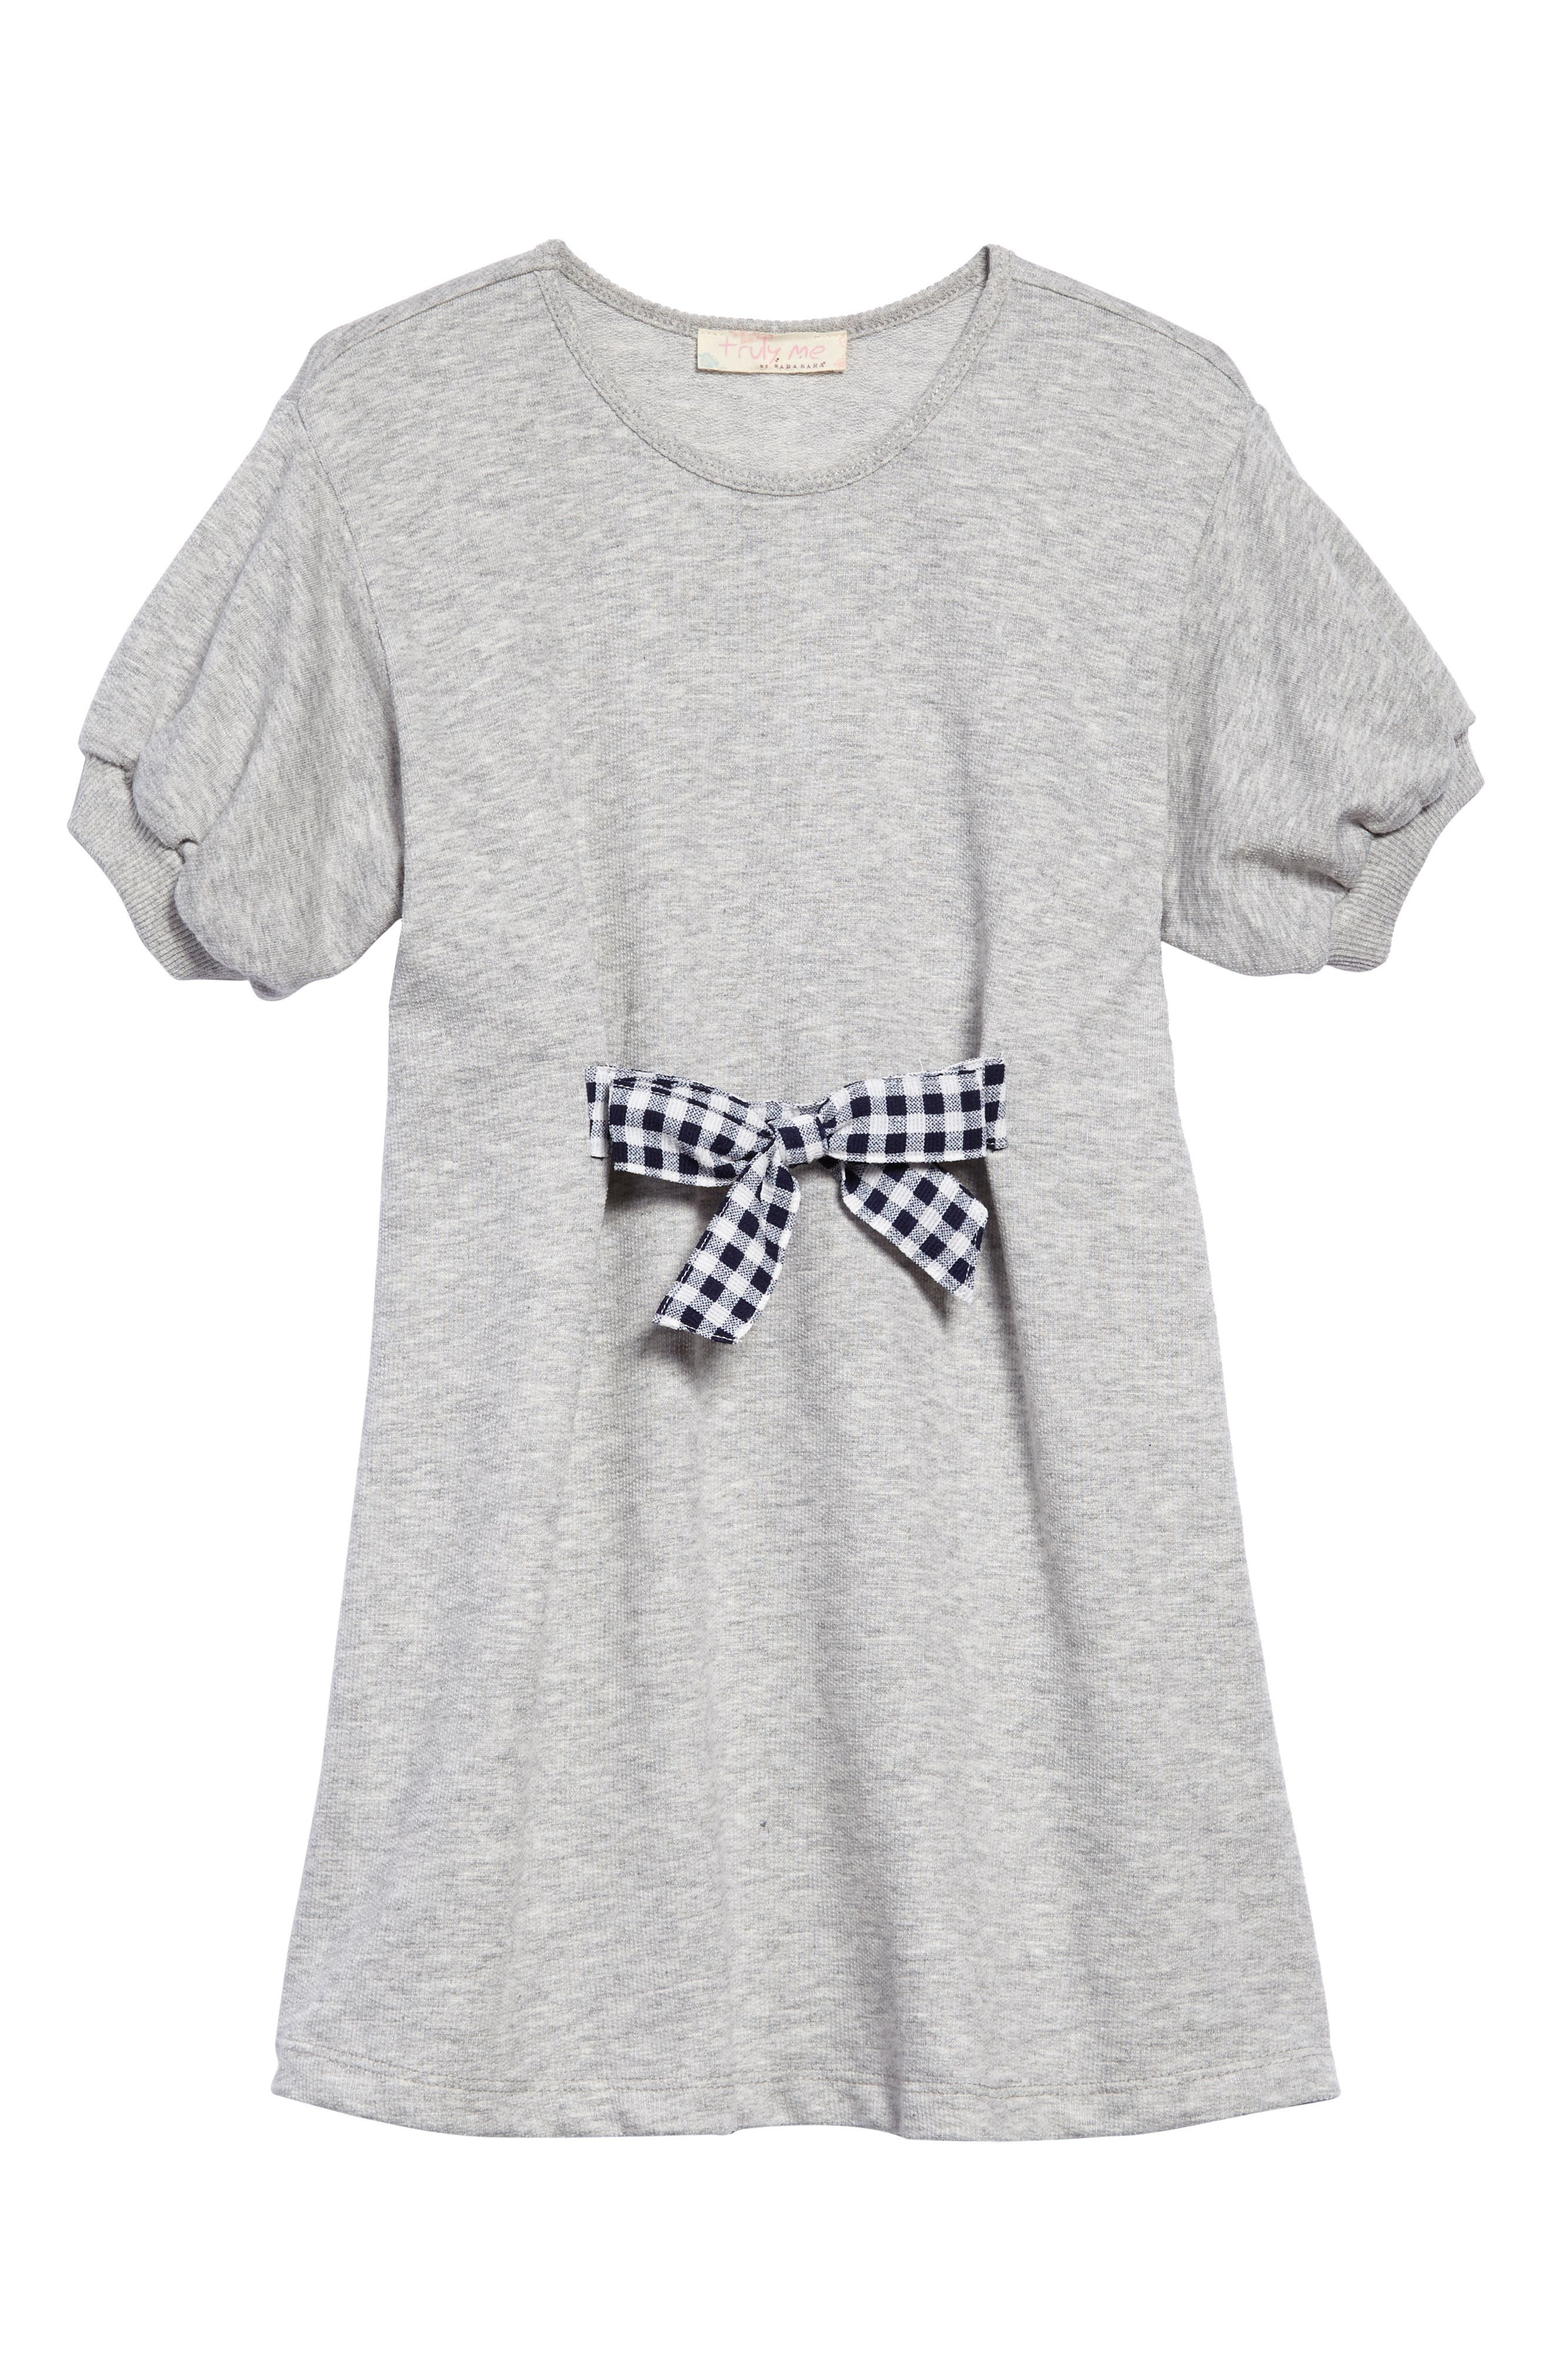 Main Image - Truly Me Tie Front Gingham Bow Dress (Toddler Girls & Little Girls)